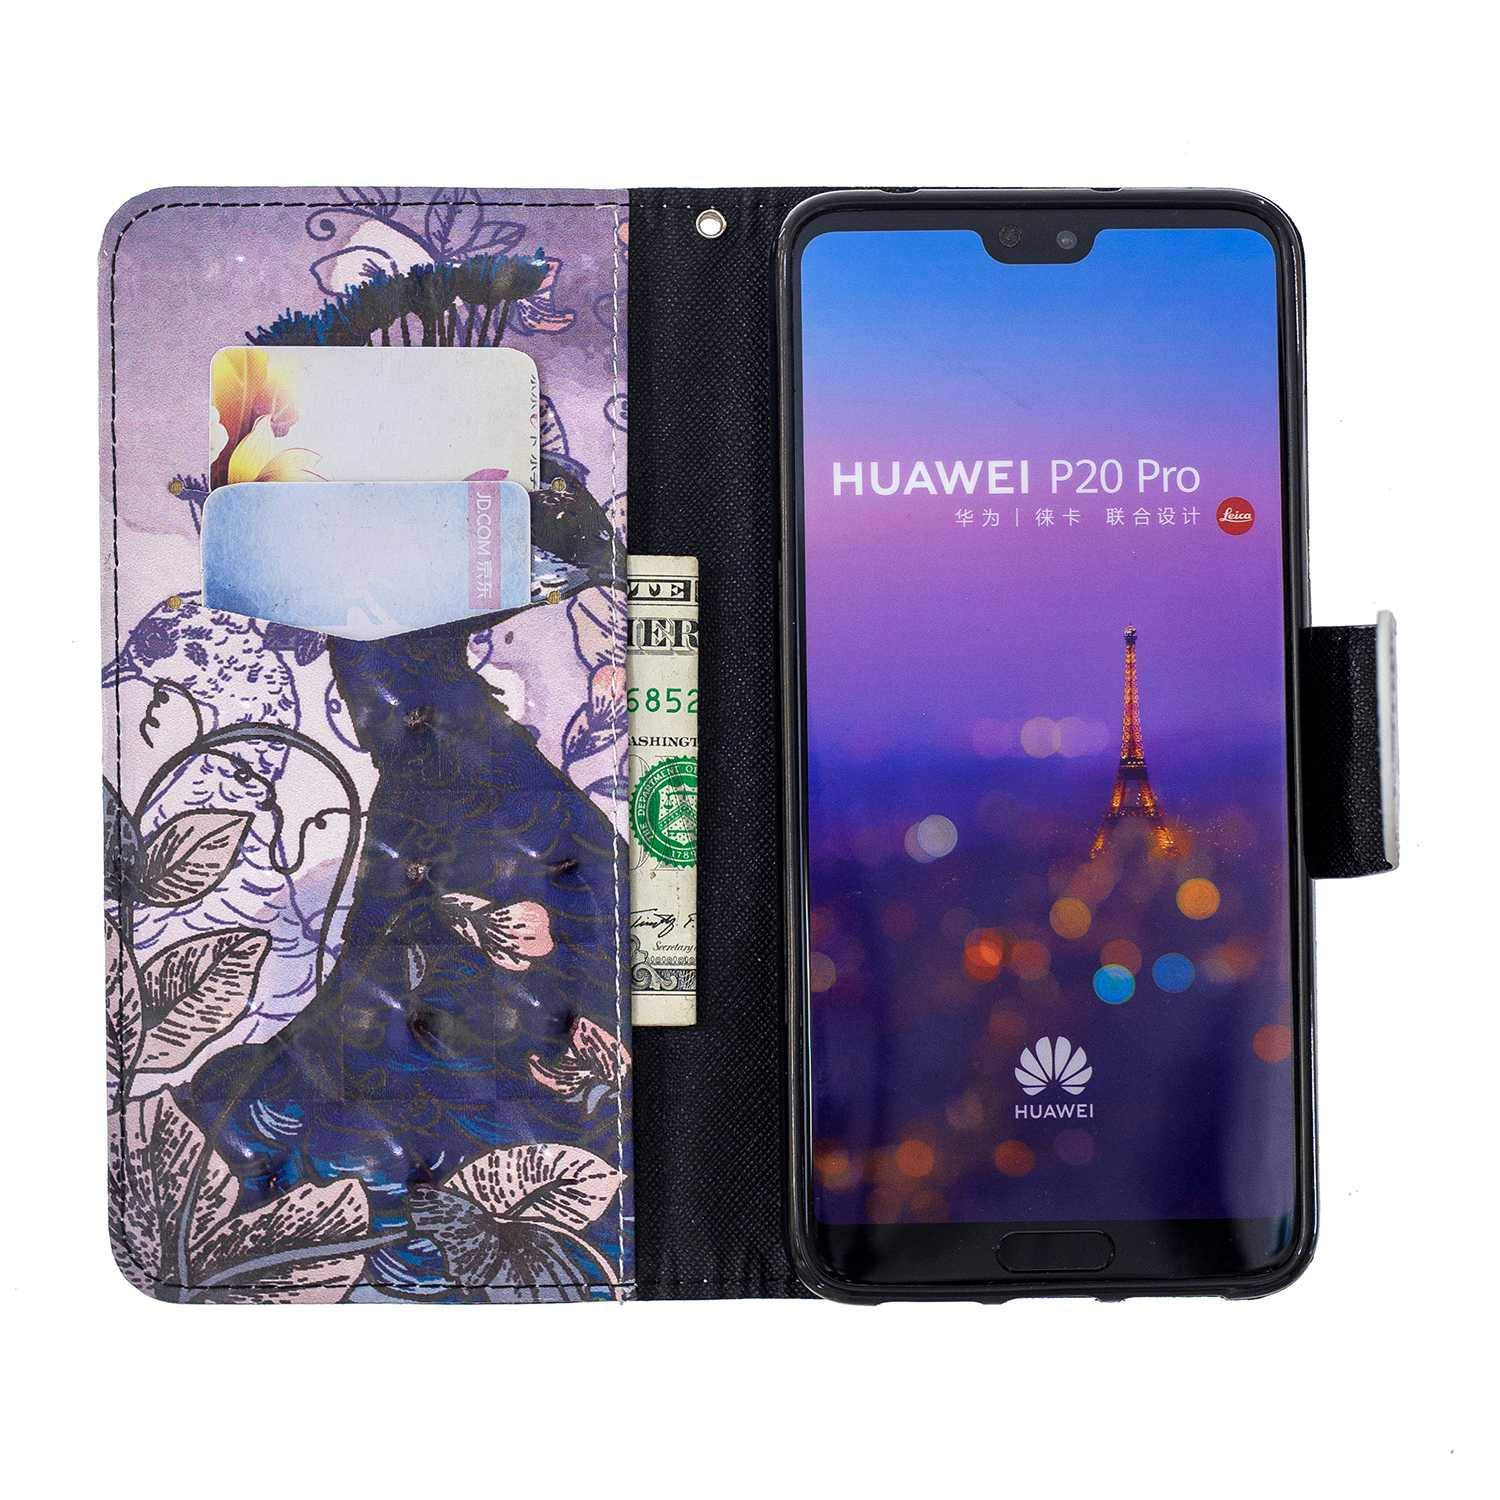 CUSKING Huawei P20 Pro Case, Premium 3D Design Wallet Case Stand Flip Case with Card Holders and Magnetic Closure, Multi-Functional Shockproof Case for Huawei P20 Pro - Peacock by CUSKING (Image #4)